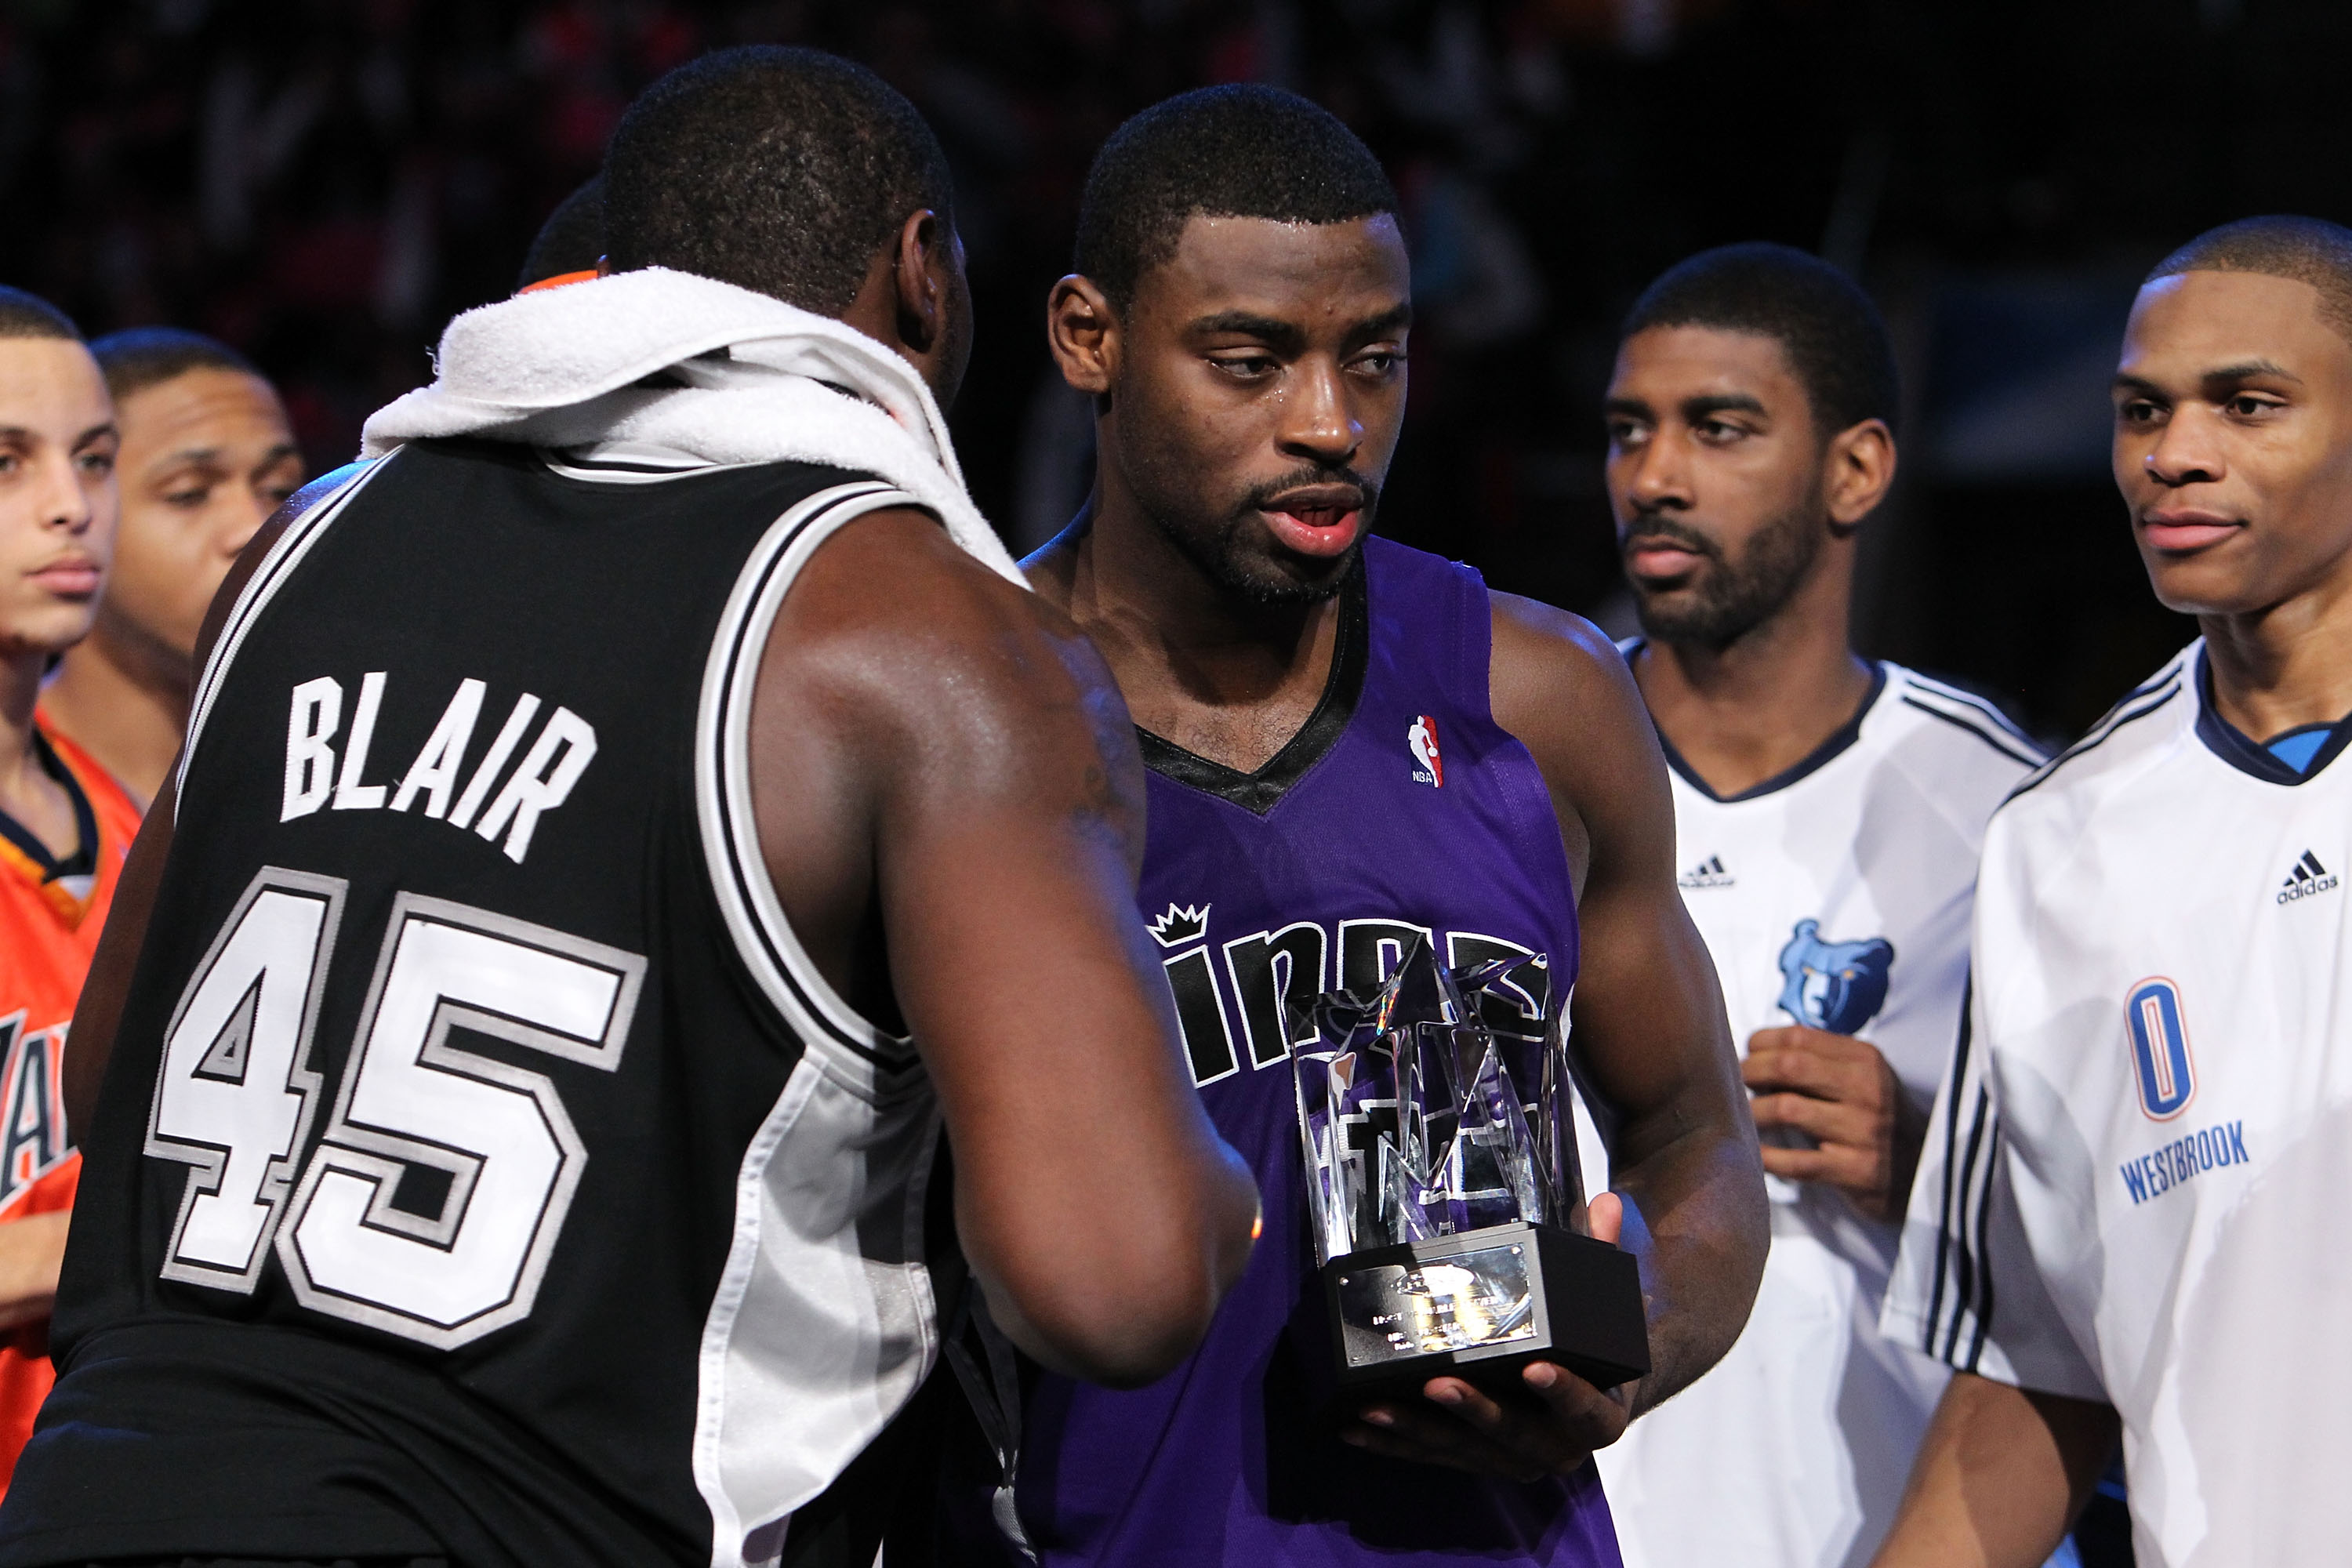 DALLAS - FEBRUARY 12:  DeJuan Blair #45 of the Rookie team congratulates teammate Tyreke Evans #13 on receiving the MVP trophy after defeating the Sophomore team during the second half of the T-Mobile Rookie Challenge & Youth Jam part of 2010 NBA All-Star